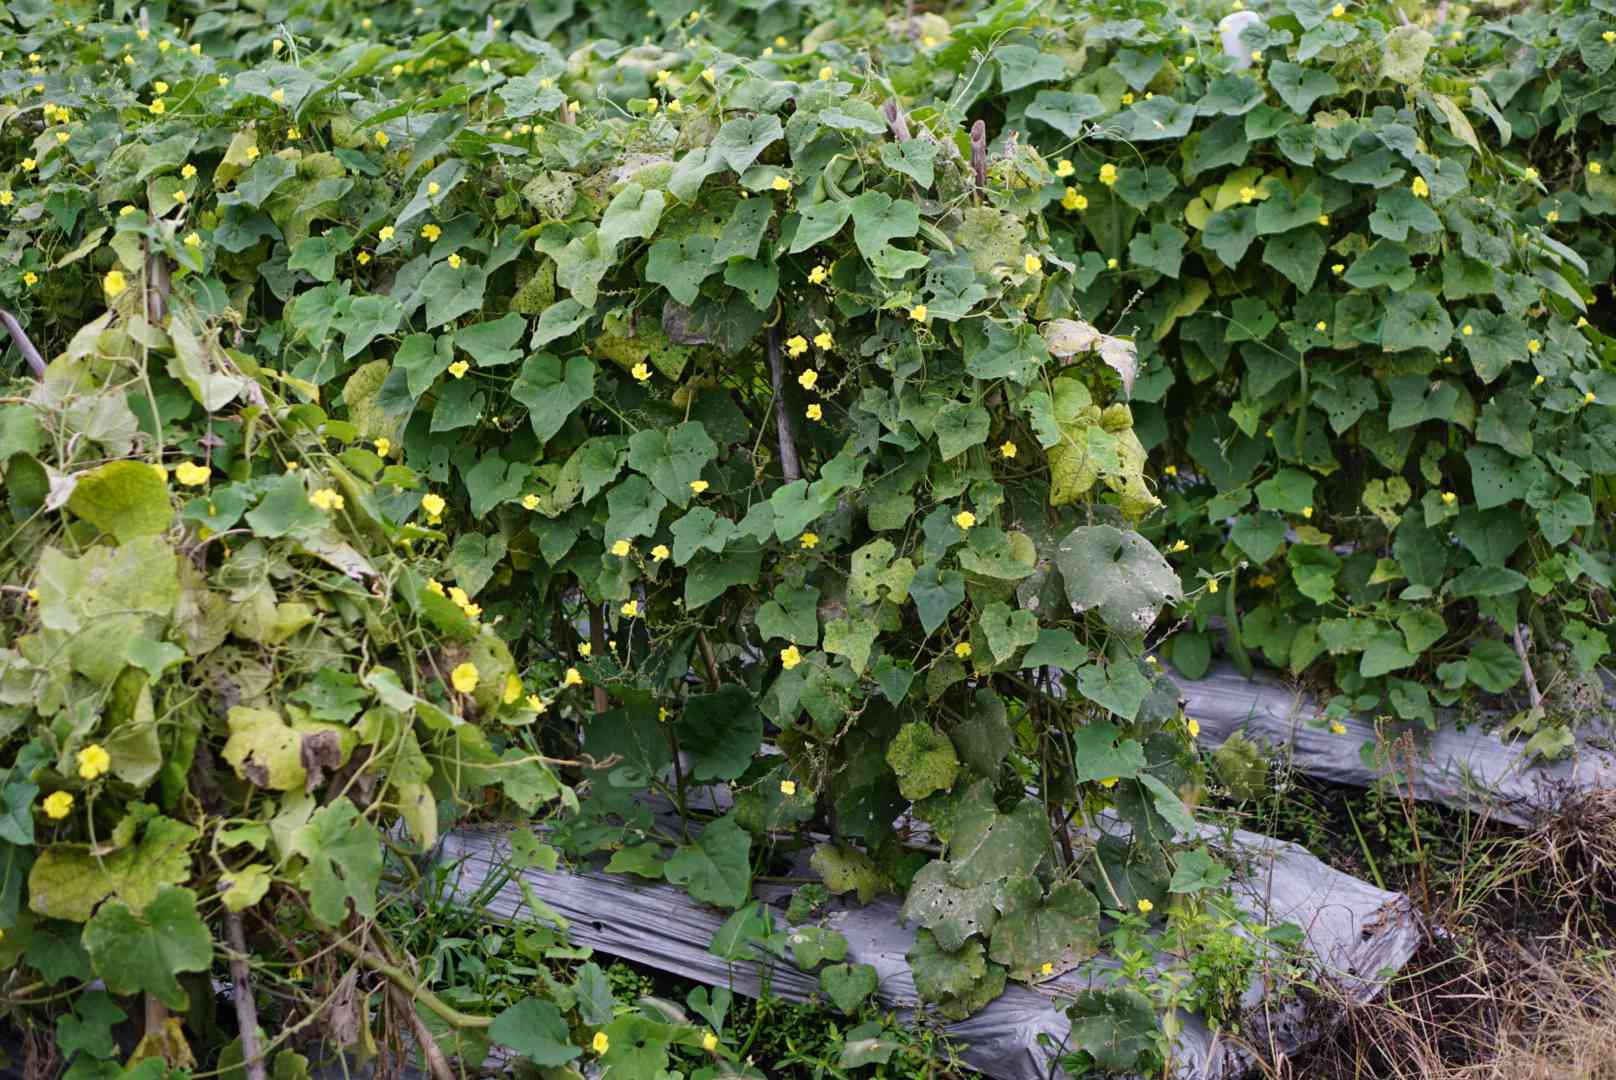 Vines hanging on metal trellis with small flowers placed in vegetable garden